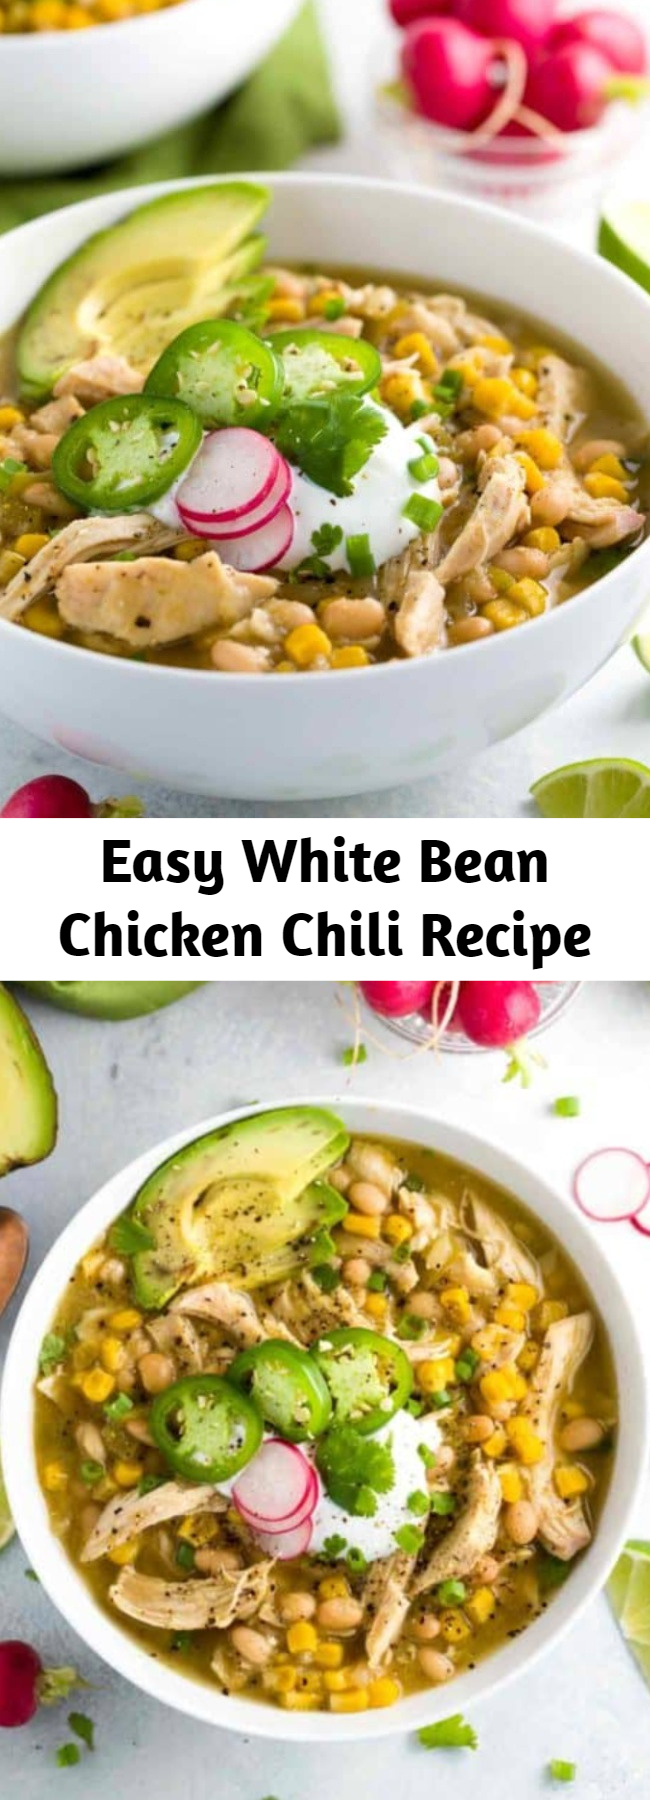 Easy White Bean Chicken Chili Recipe - White bean chicken chili simmered in a crockpot with whole roasted jalapenos, tender beans, corn, and lean chicken breast. This recipe is fantastic if I don't say so myself!